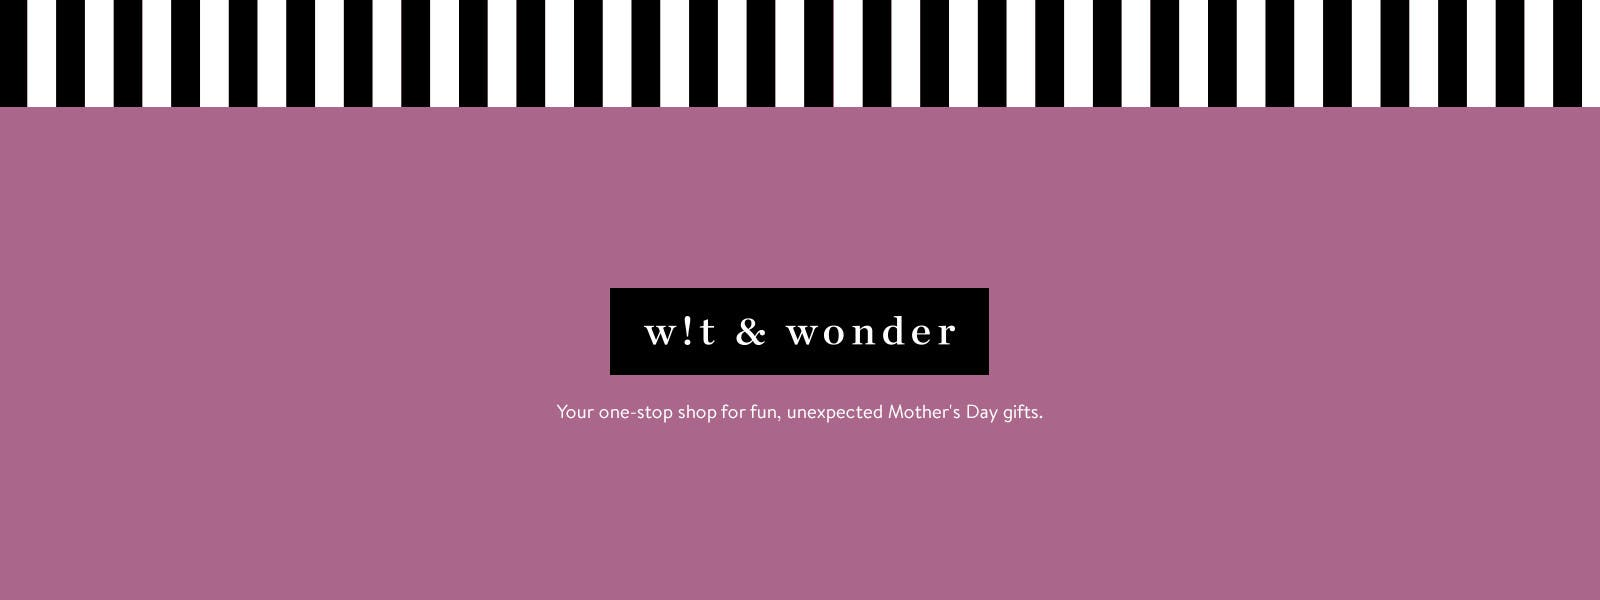 Wit and wonder: Mother's Day gifts.